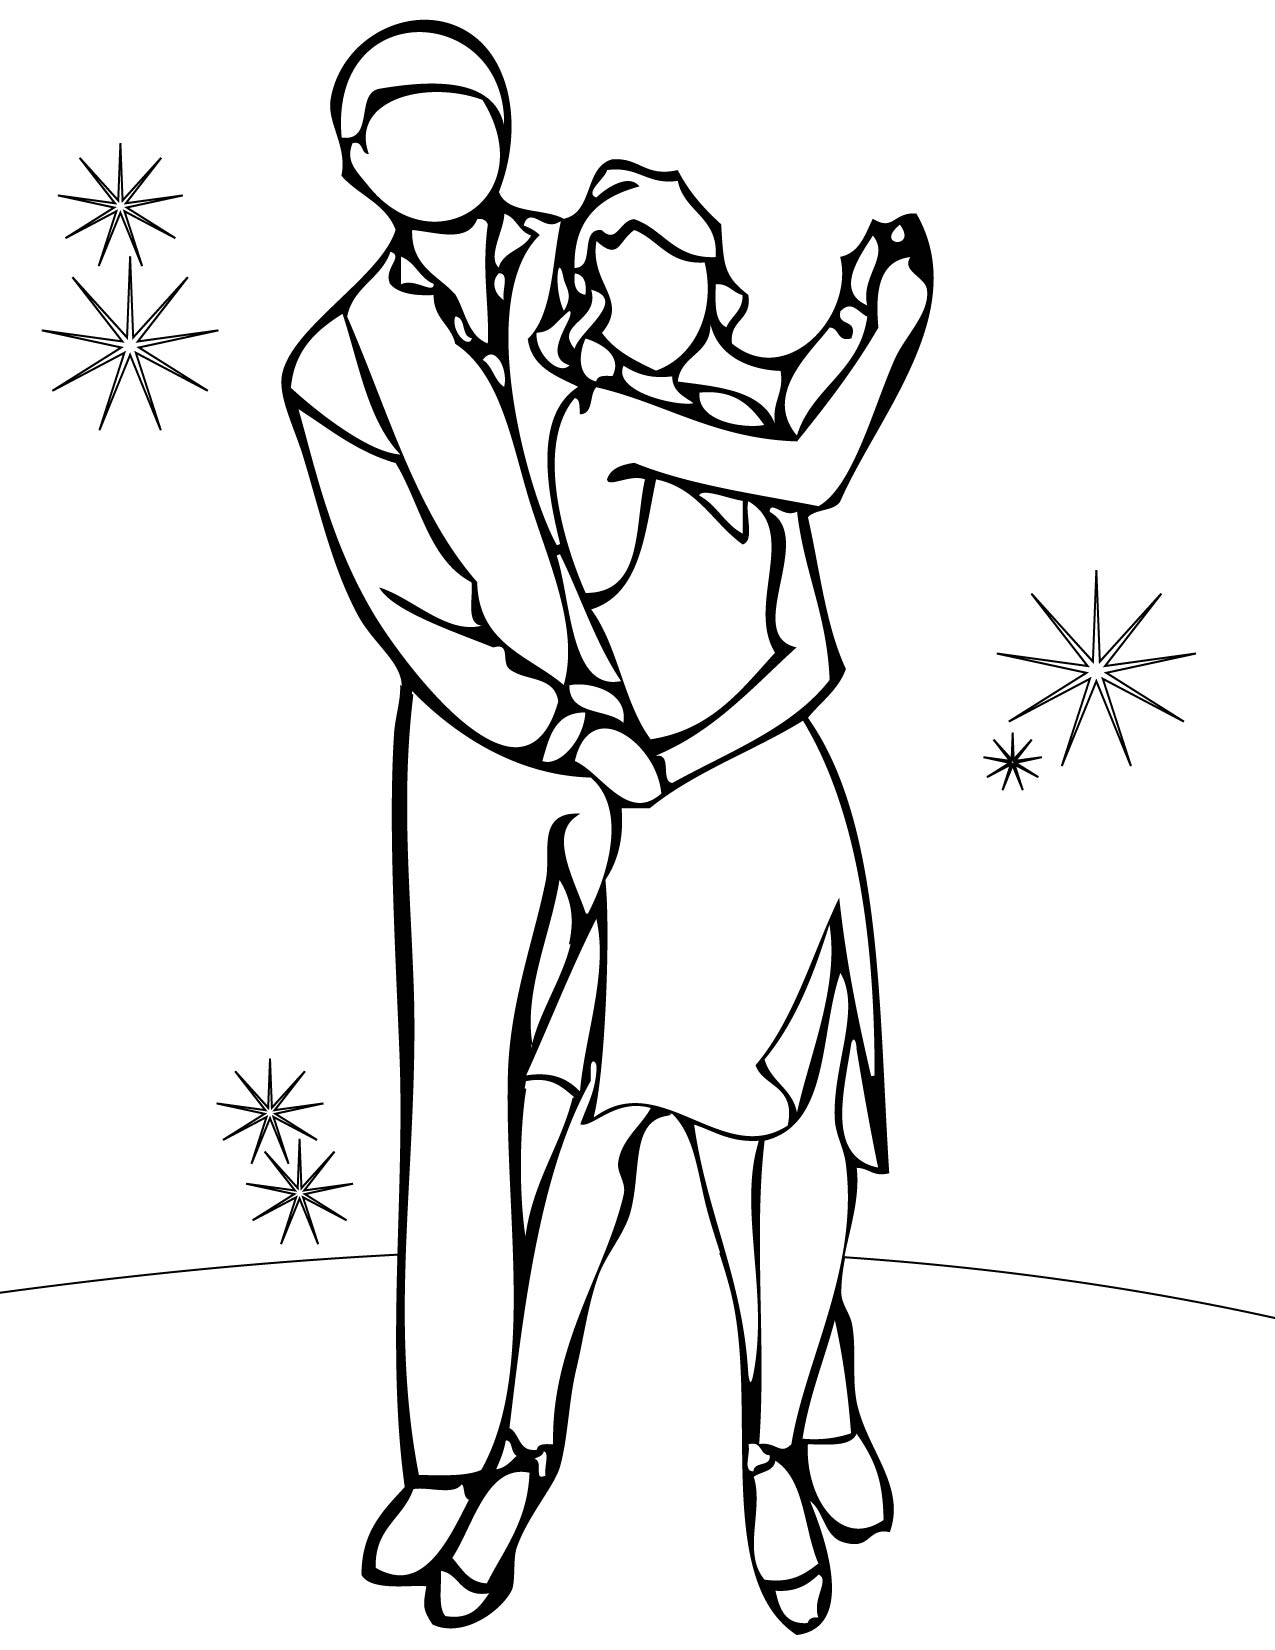 kids dancing coloring pages - photo#24